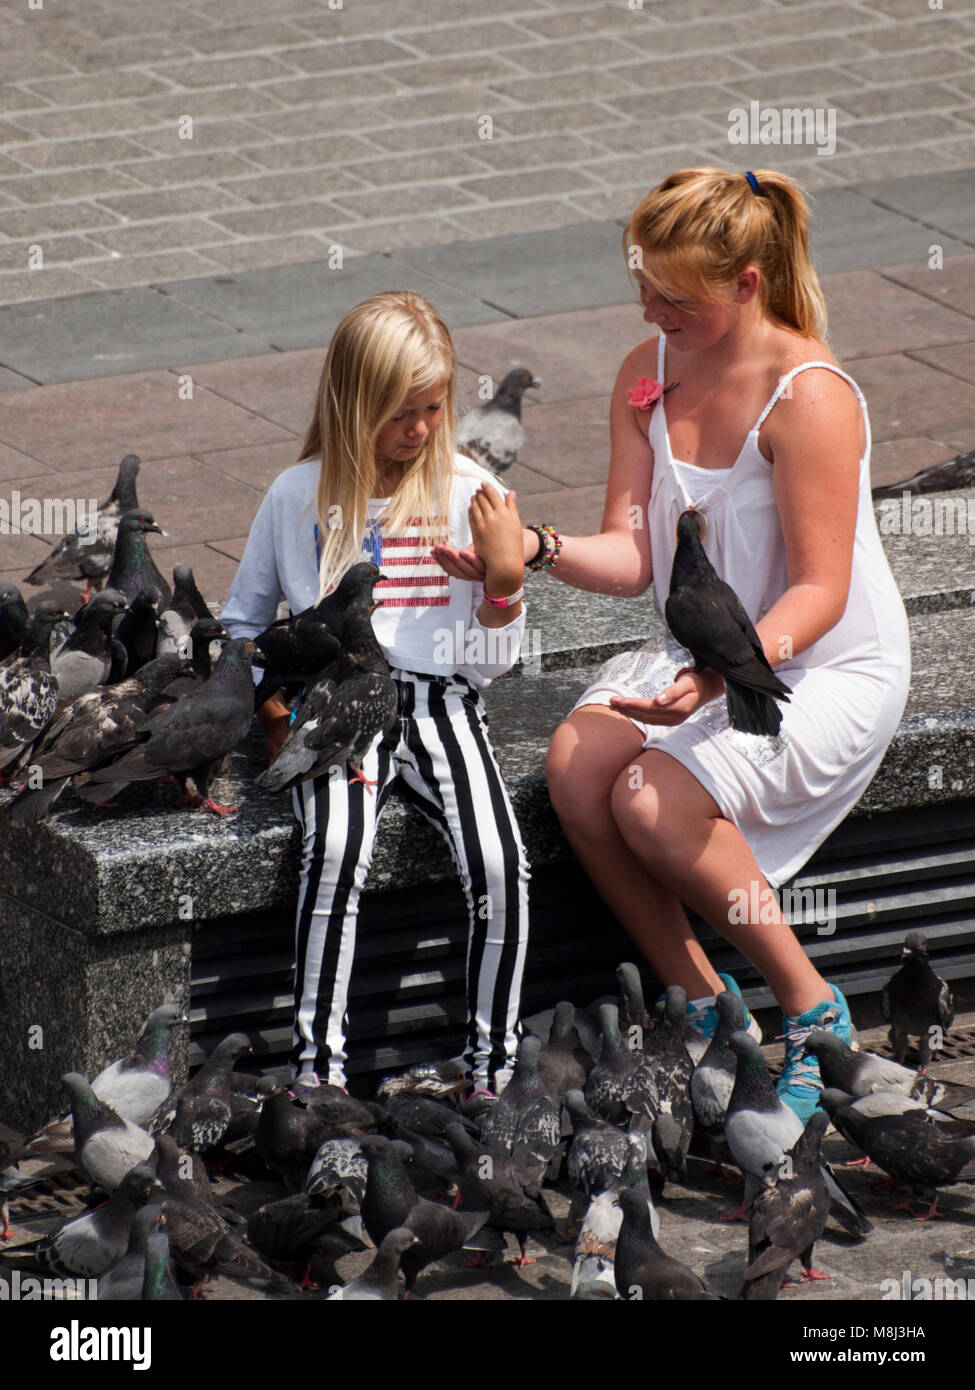 two teenage girls feeding pigeons in the Main Square, Krakow. - Stock Image